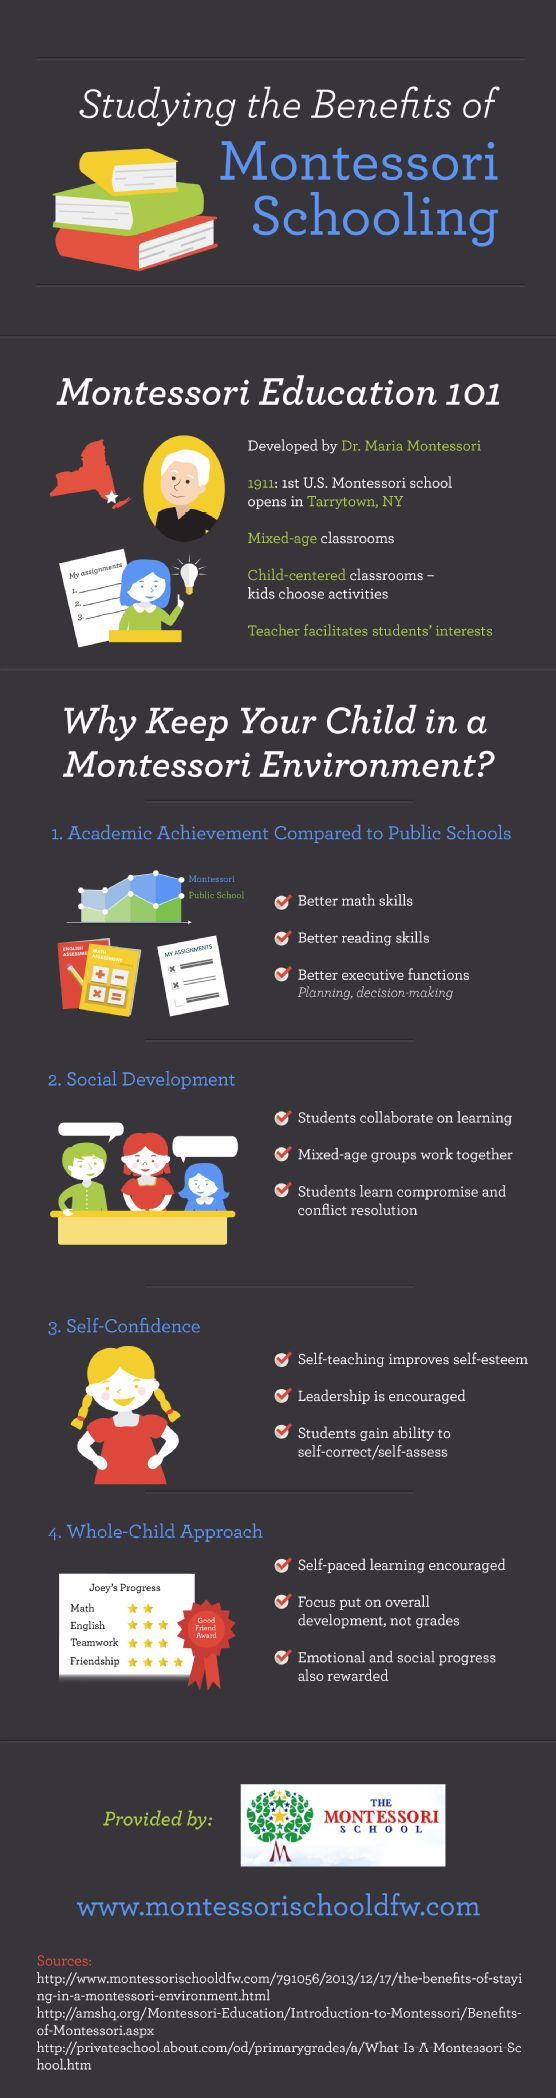 The Montessori method was developed by Dr. Maria Montessori. The first school opened in Tarrytown, New York in 1911. Today, these schools offer children a fantastic learning environment that provides much more than public schools. Get more information by clicking over to this Allen Montessori School infographic.